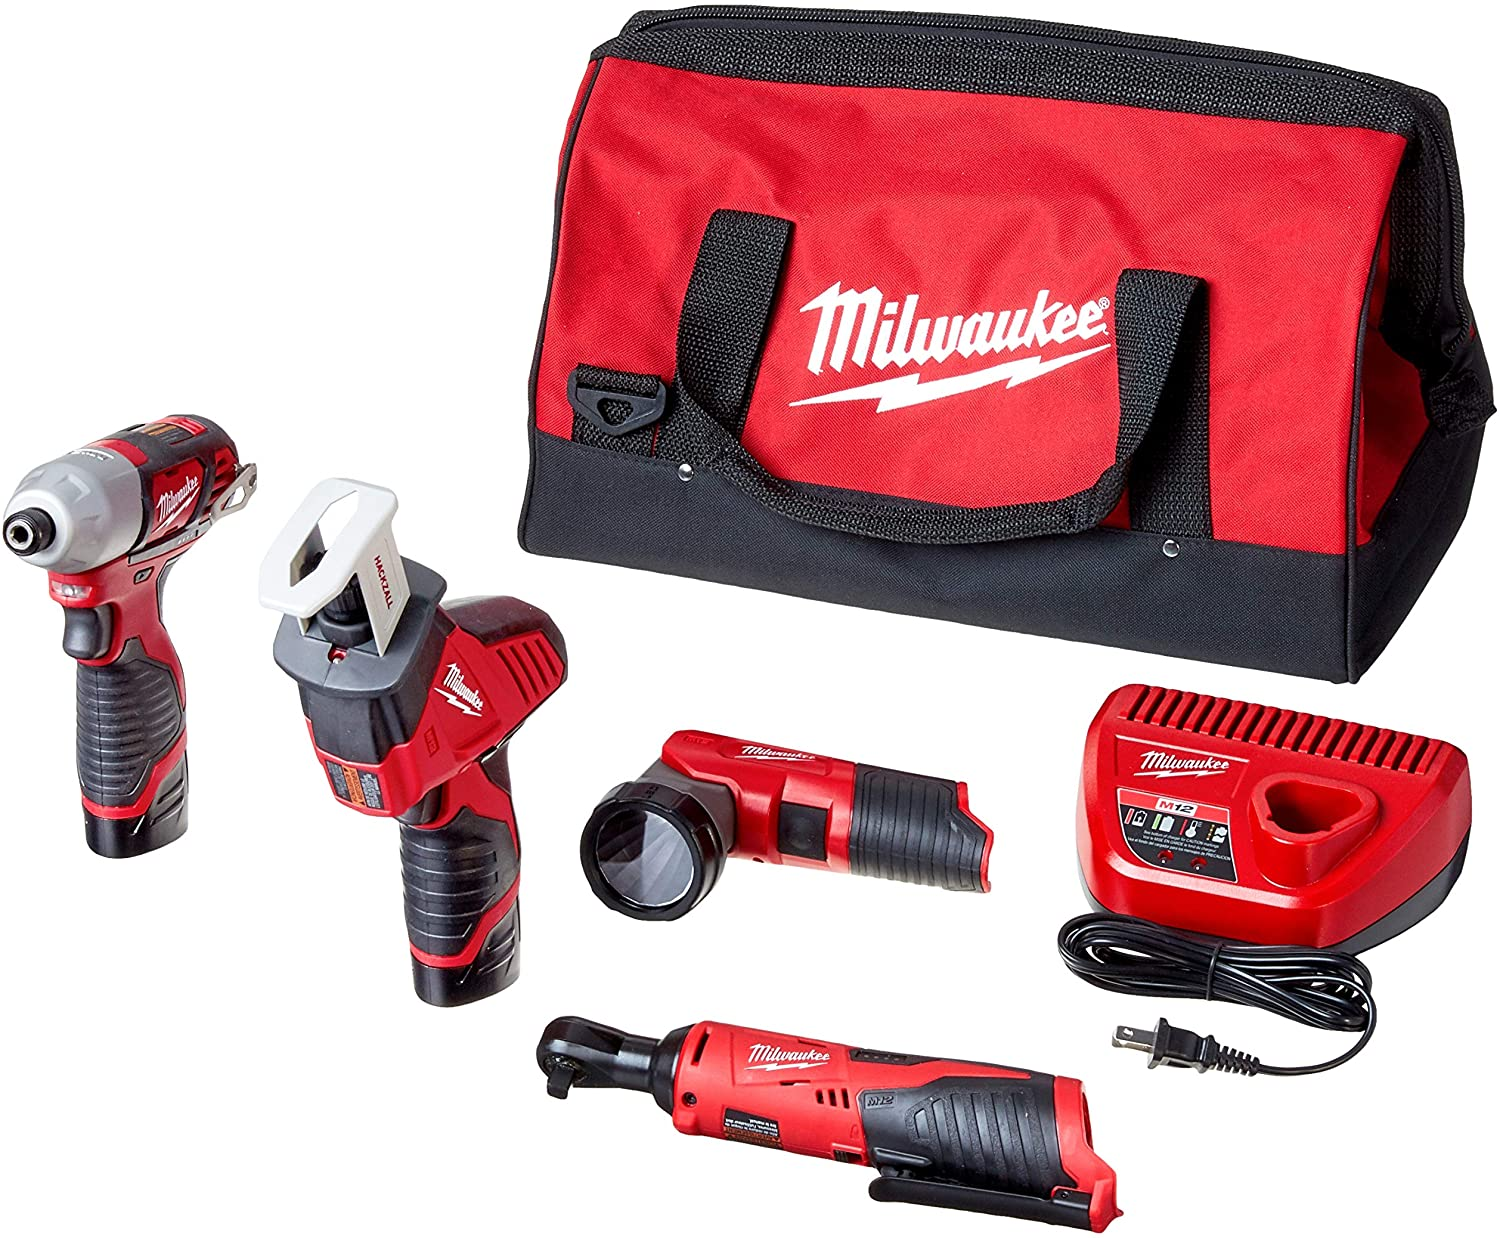 2717-21HD Brushless Cordless SDS-max Rotary Hammer Kit